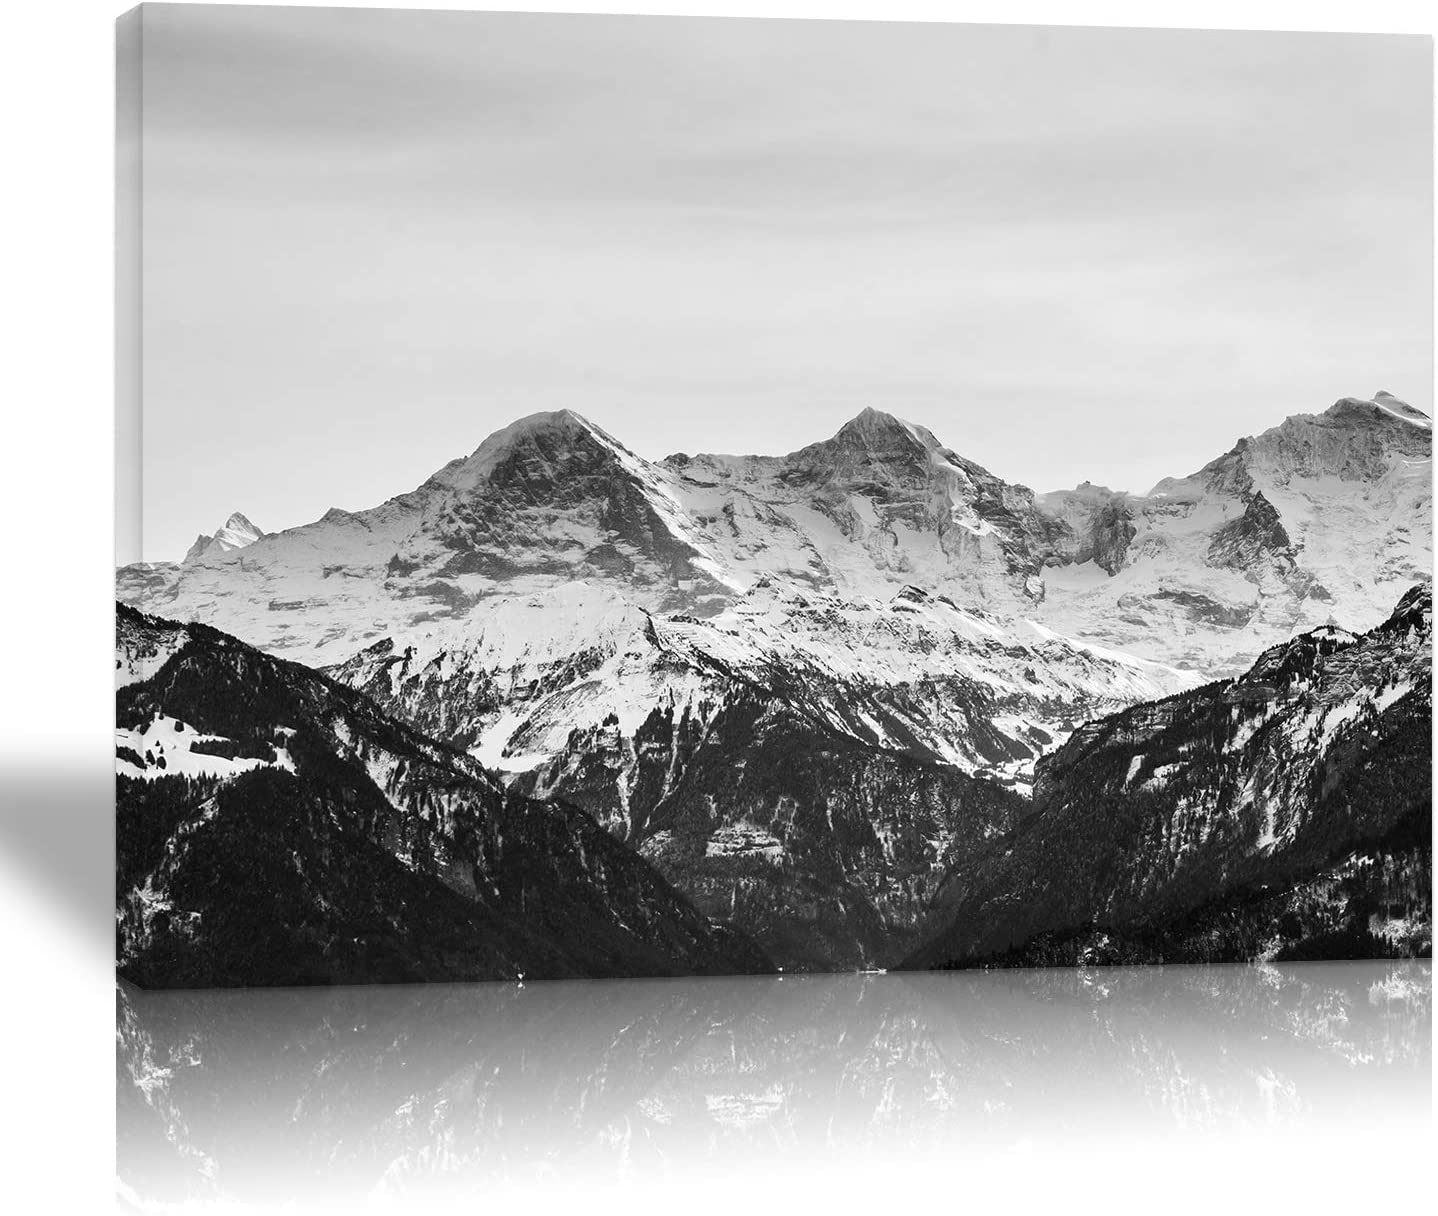 Looife Custom Wall Art Prints from Your Photo on 48x36in Canvas, Personalized Wall Decor Paintings with Solid Wood Frame for Living Room, Bedroom, Kitchen and Office, Ready to Hang